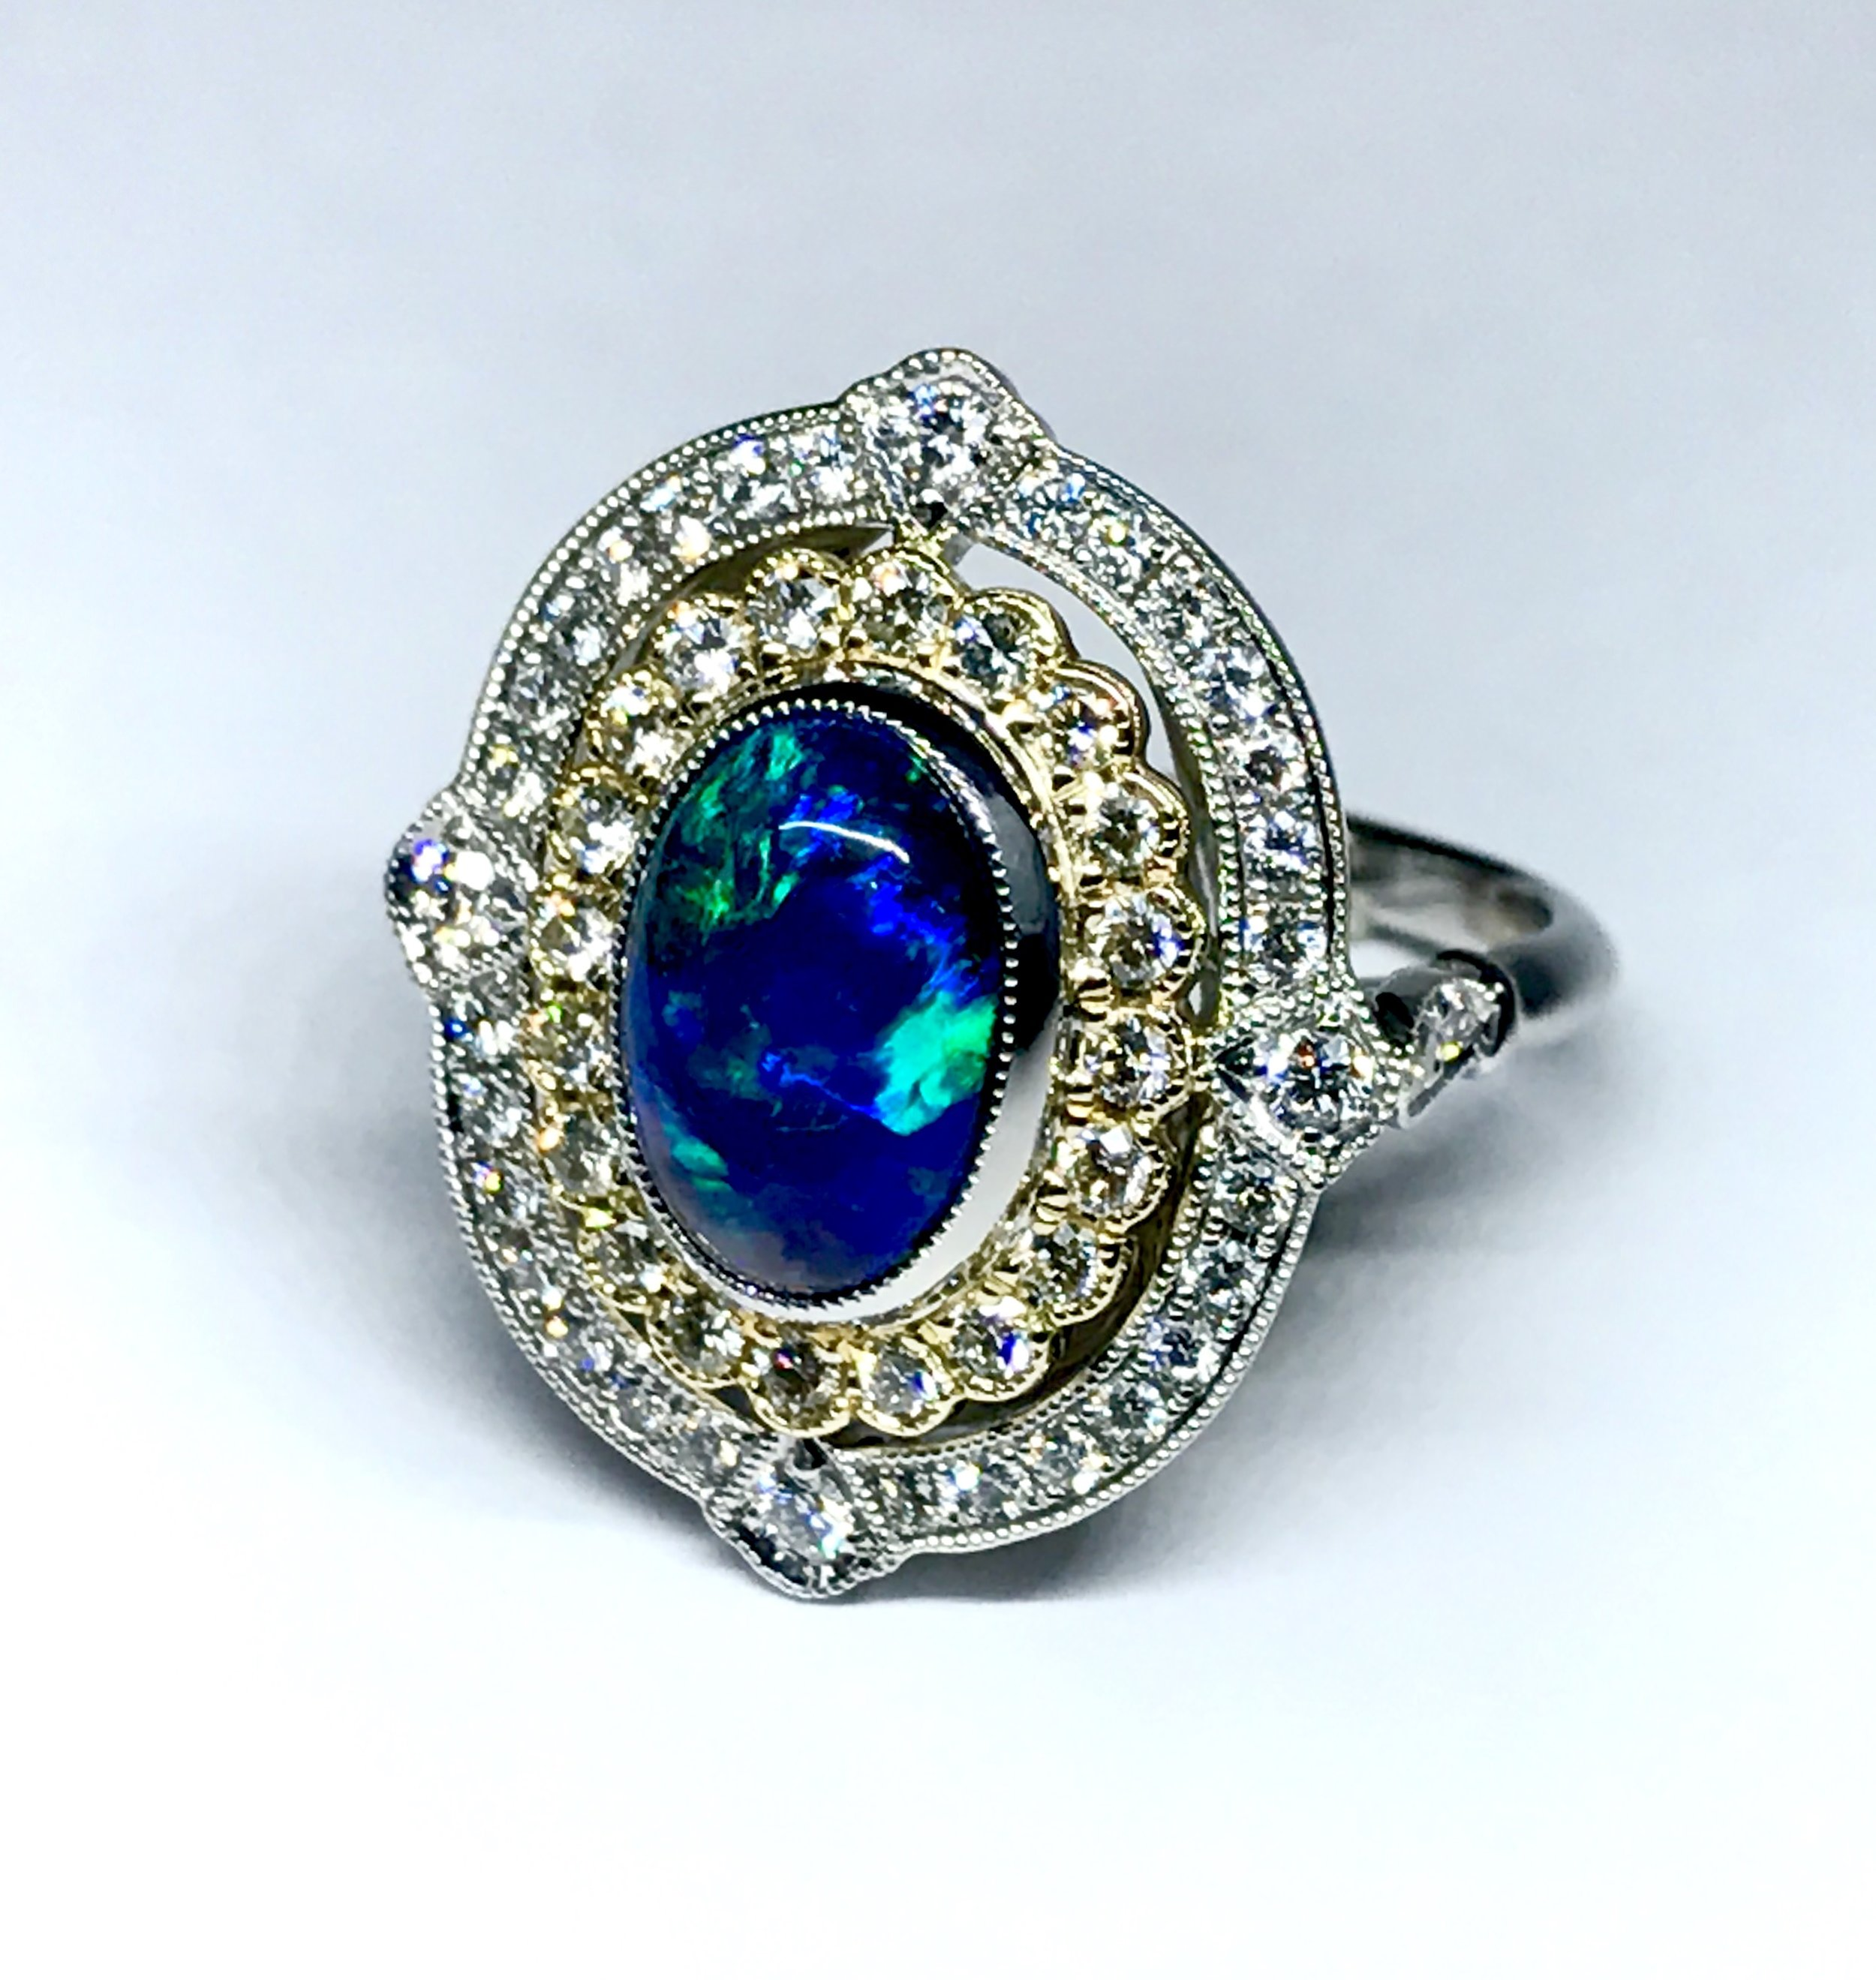 Black opal and diamond Edwardian style oval cluster ring. Made in Chichester, England.